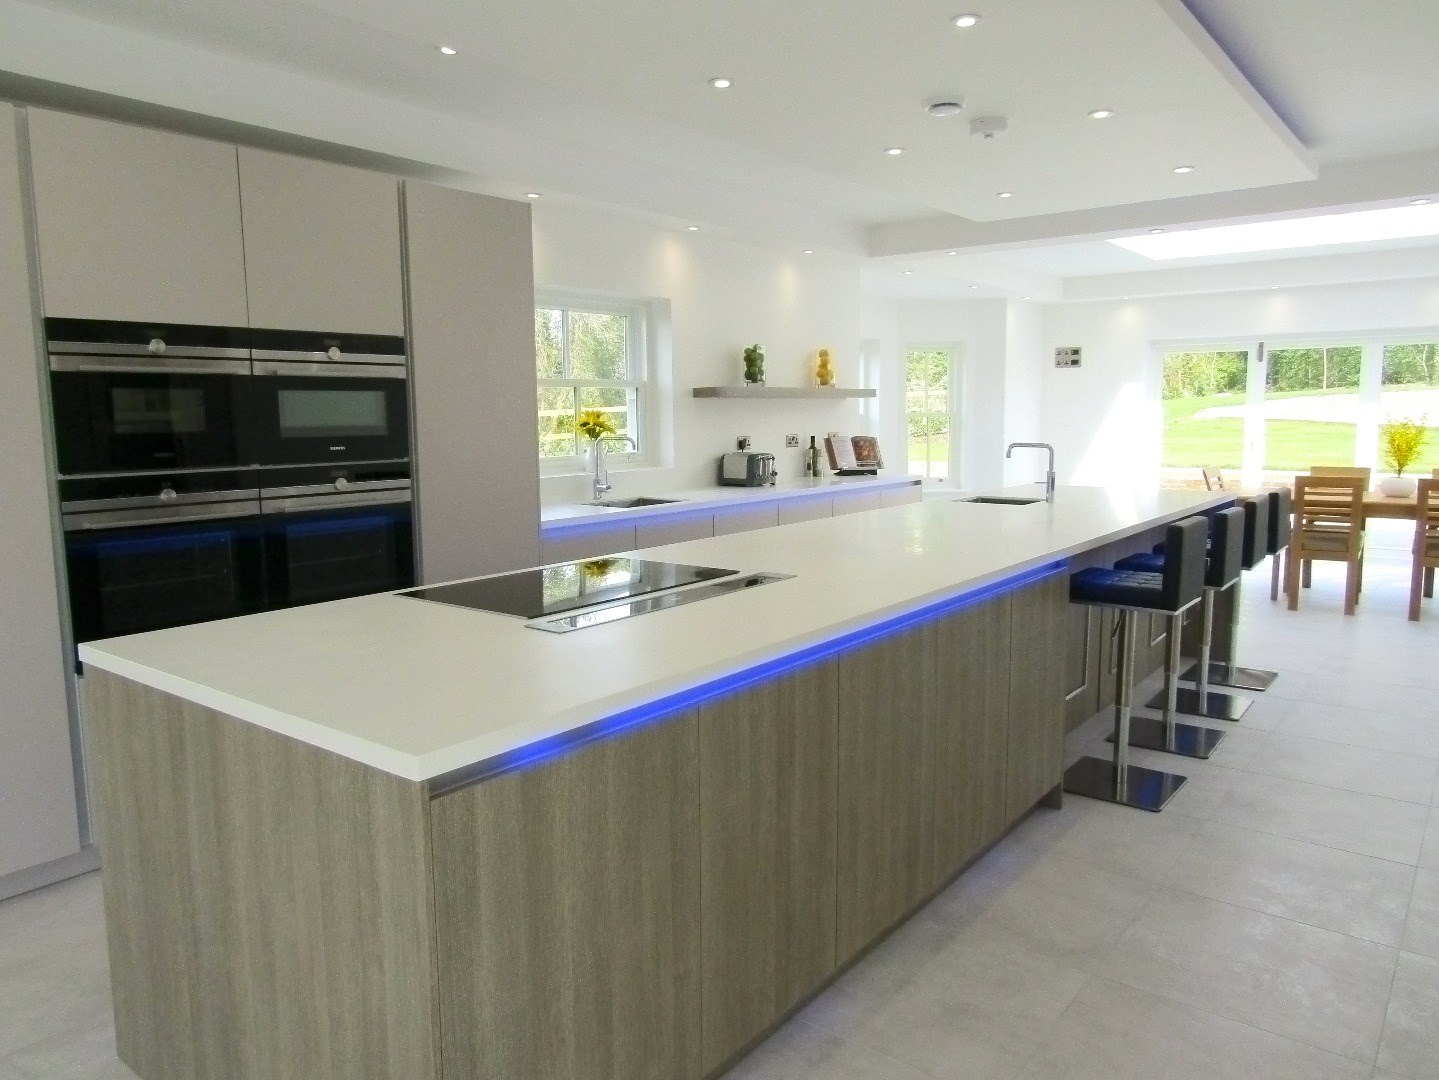 pitt hill house - winchester - handleless kitchen